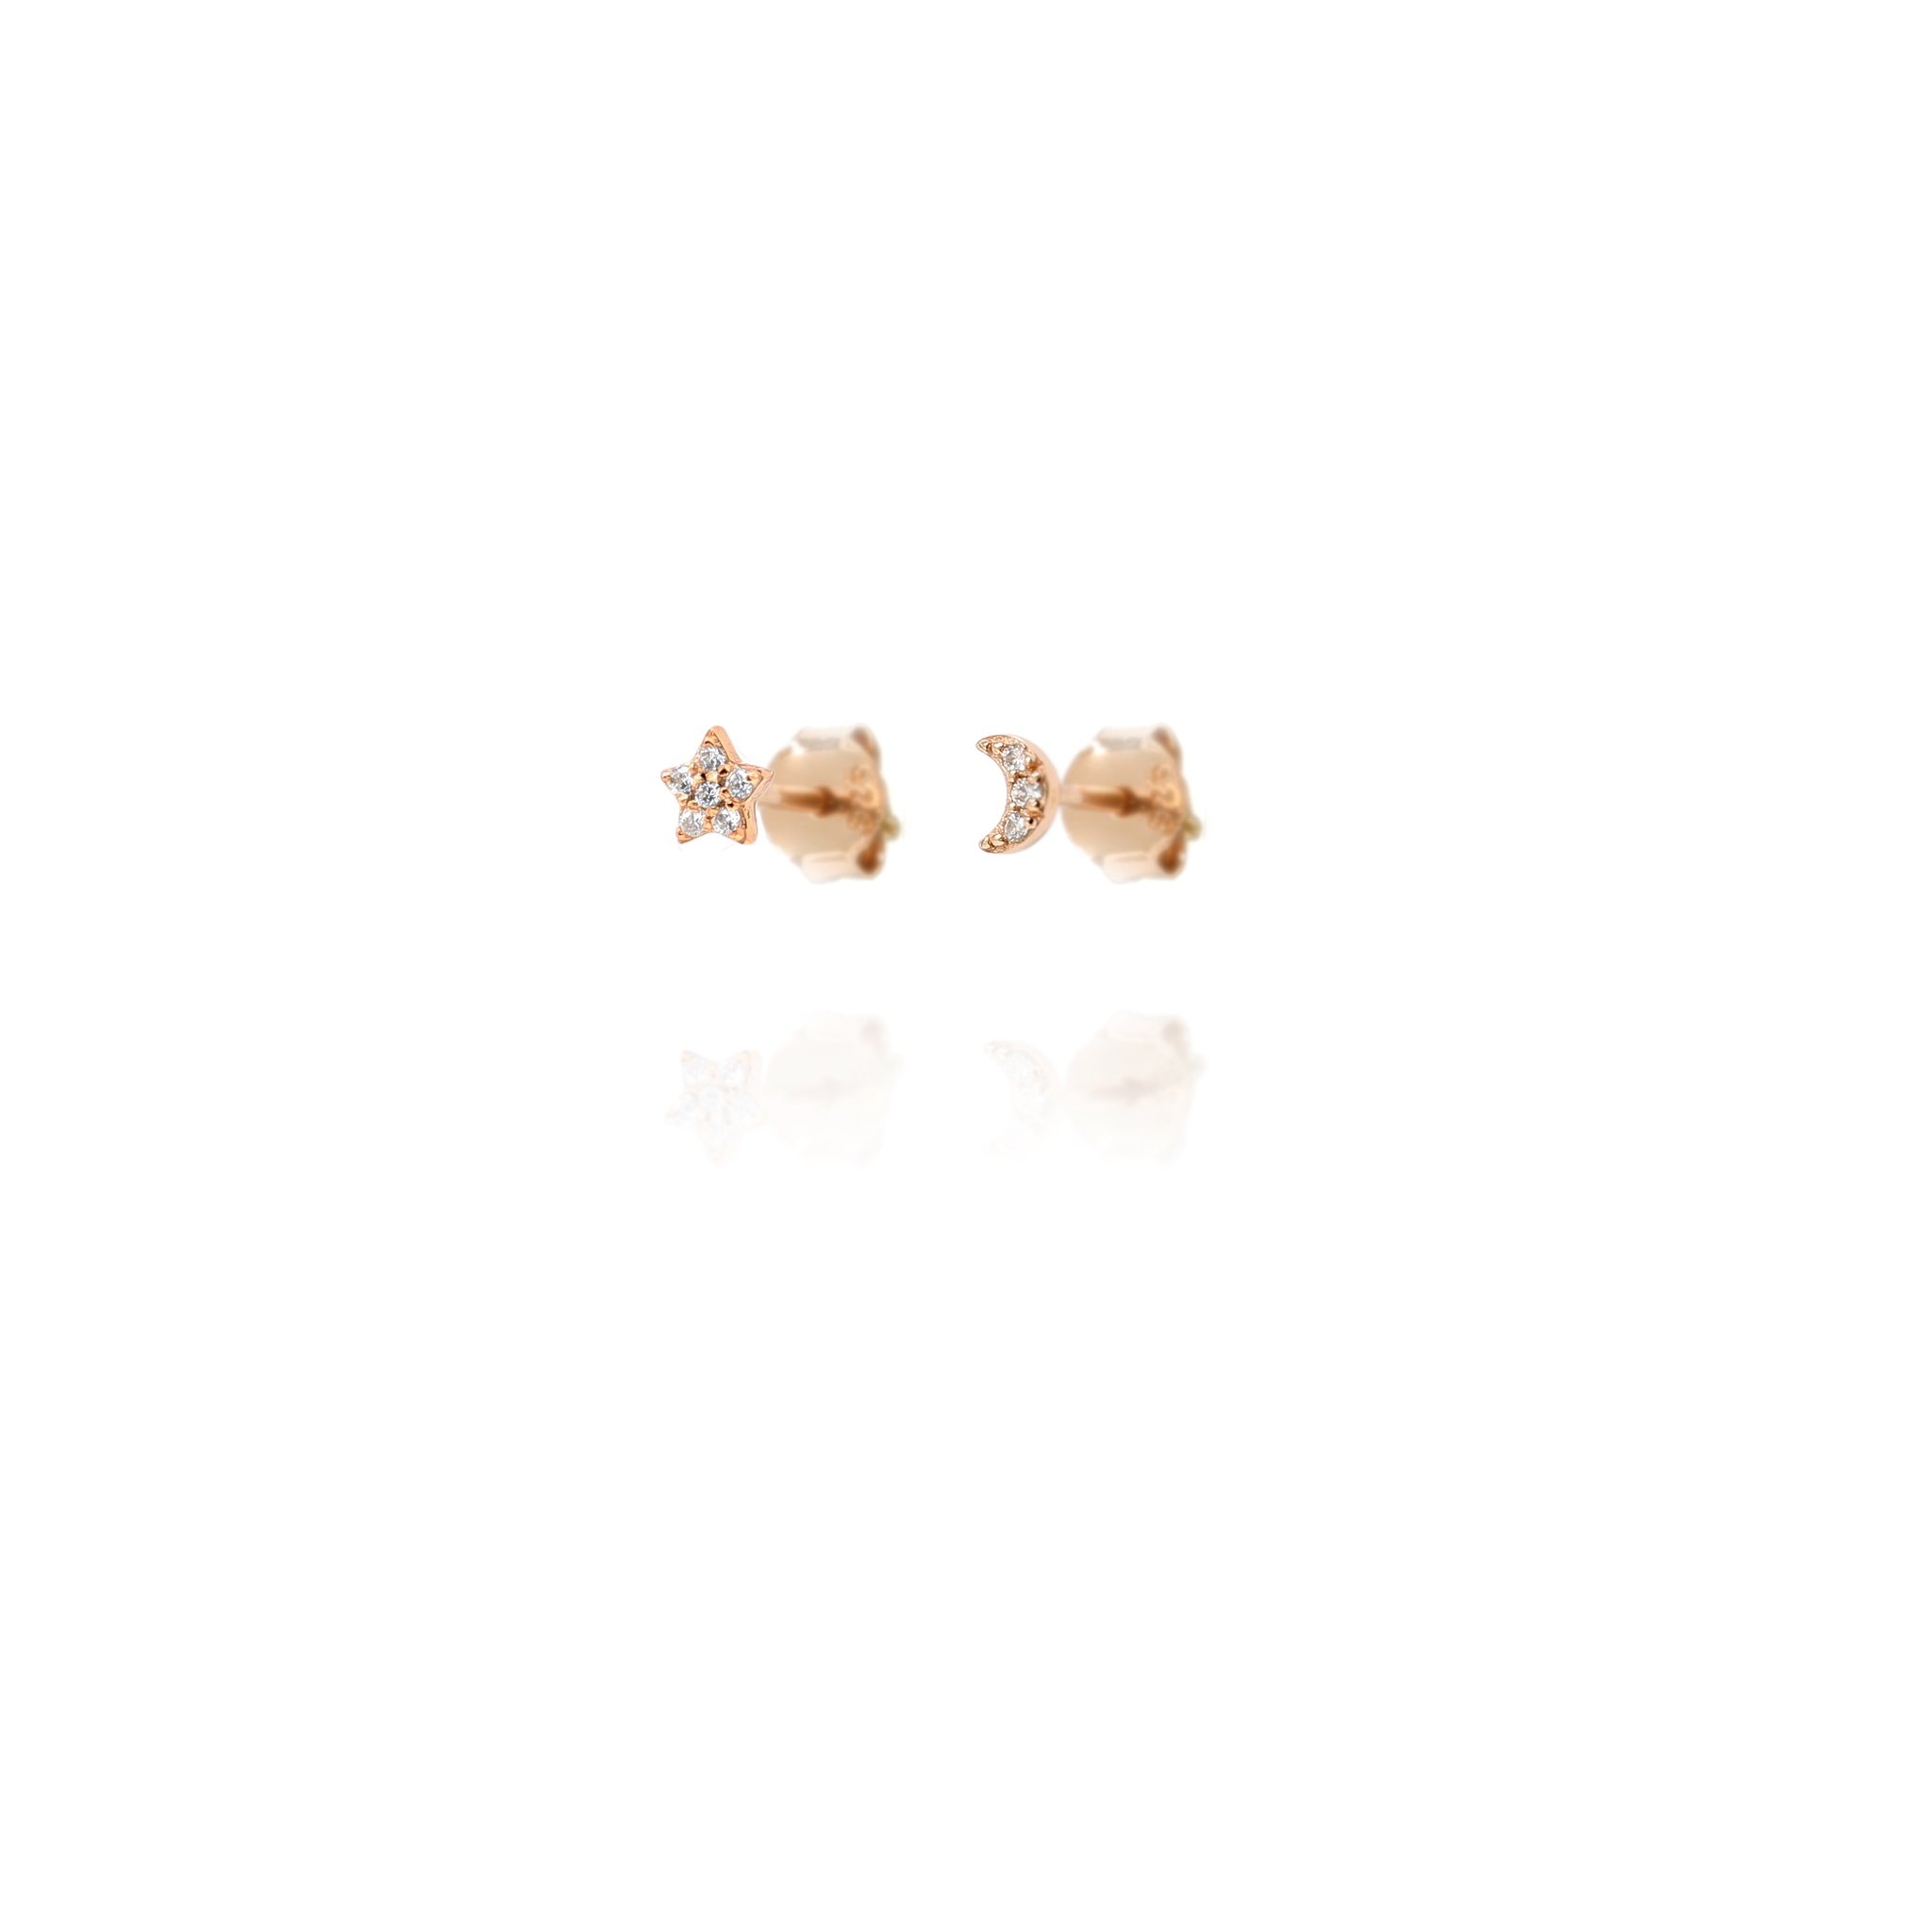 Stud Earrings Sparkly Star & Moon - Rose Gold Plate on Sterling Silver EG7/R